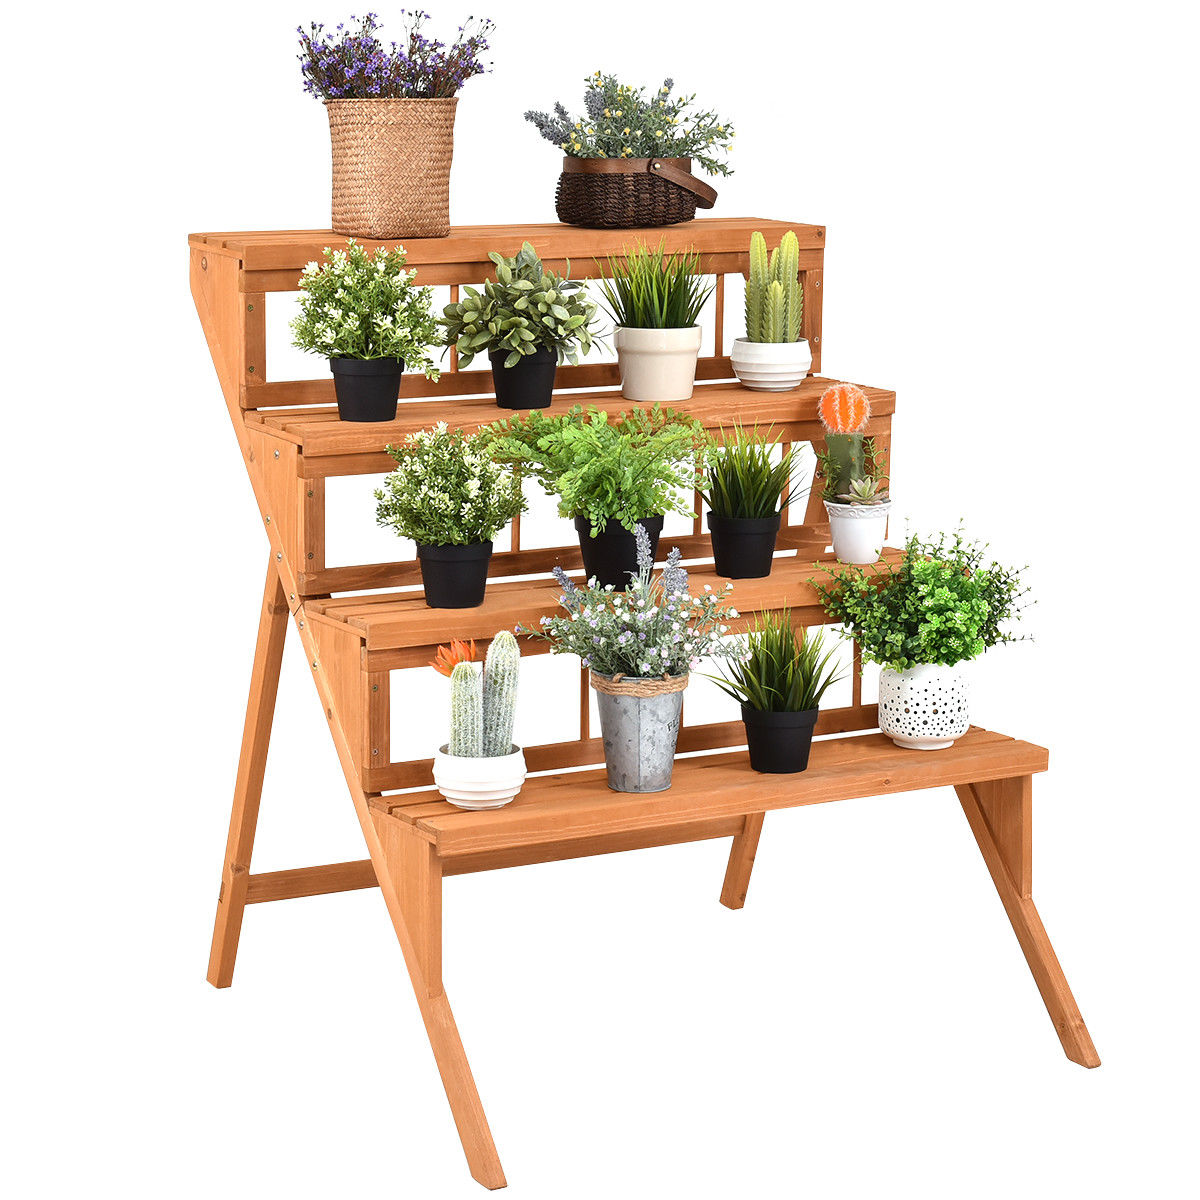 Costway 4 Tier Wood Plant Stand Flower Pot Holder Display Shelves Rack Stand Ladder Step